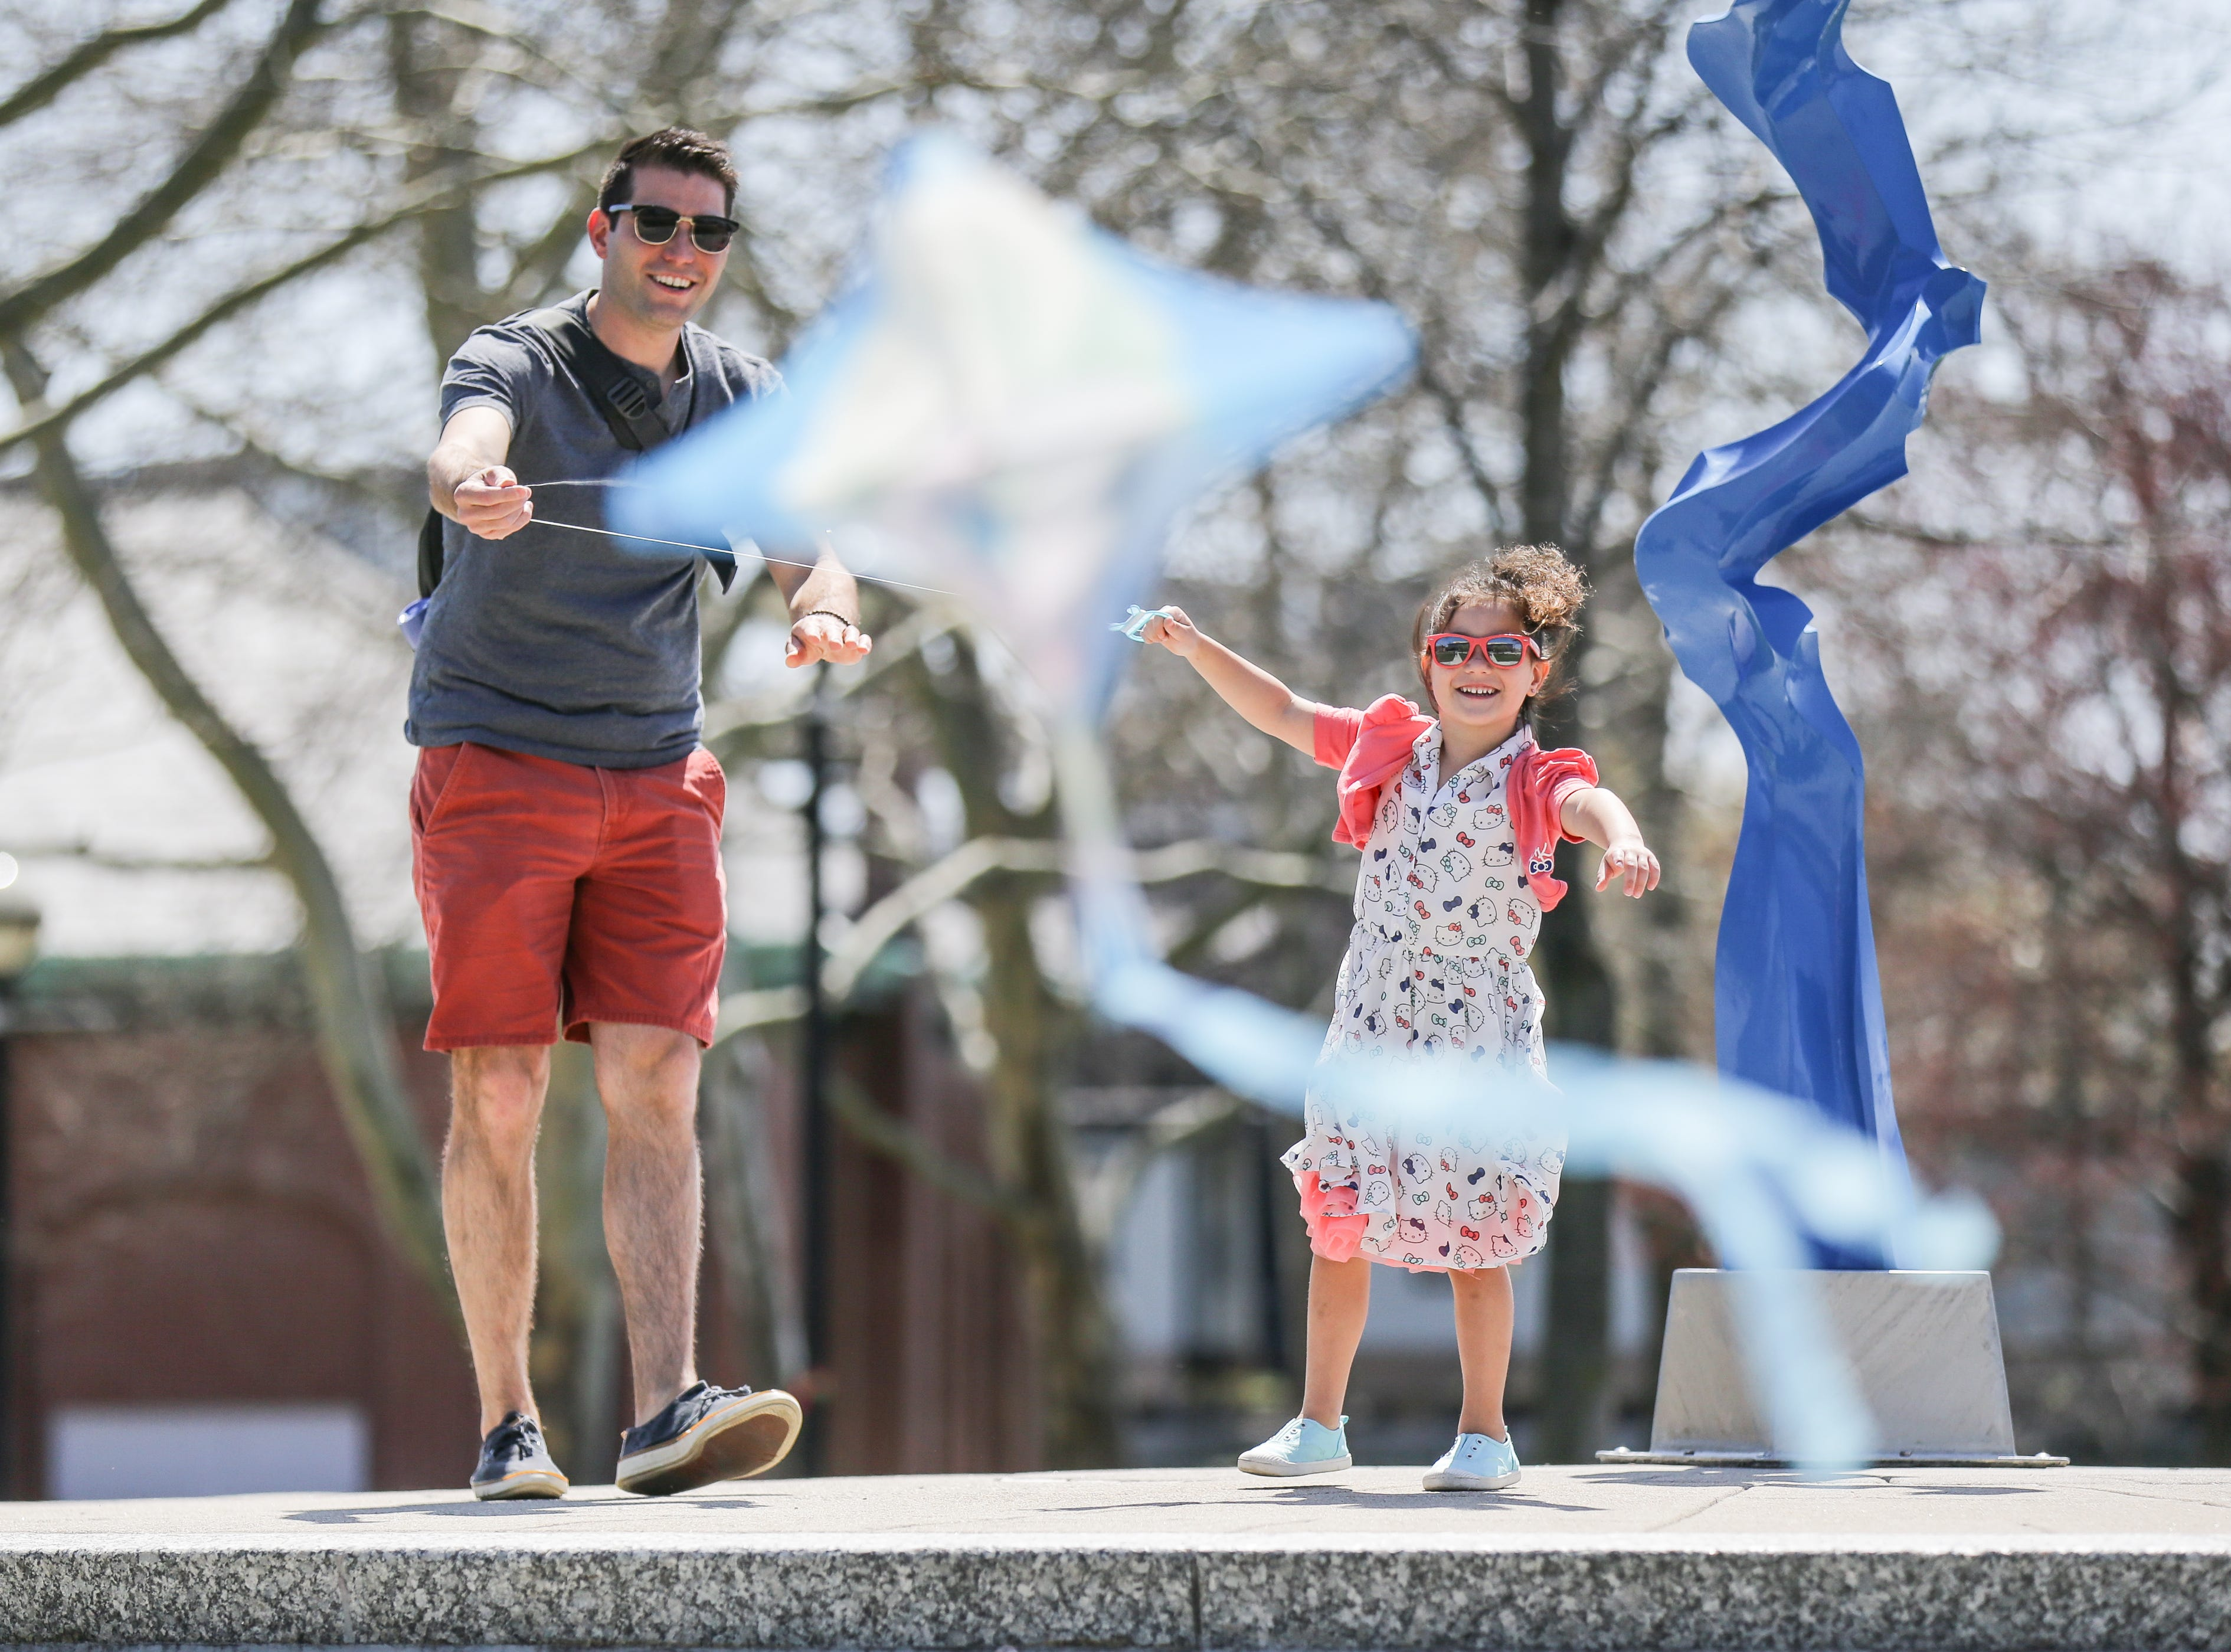 Randy Roberson and his daughter Brianna Roberson fly a kite at the White River State Park in Indianapolis on Thursday, April 12, 2018.